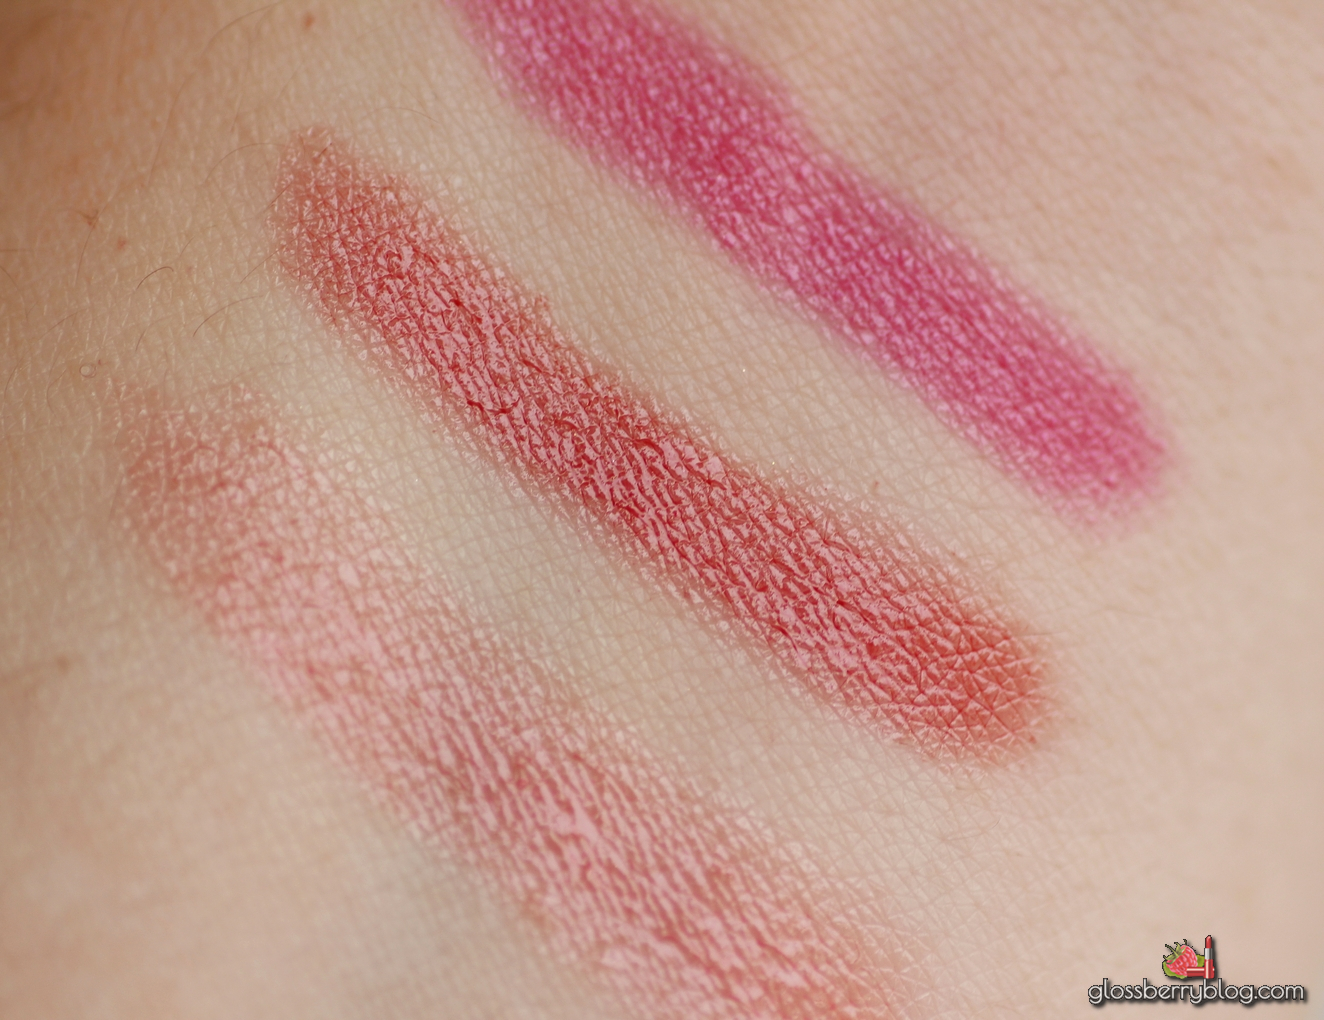 Bourjois Colour Boost Lip Crayon  - Proudly Naked, Sweet Machiato, Pinking Of It 09 08 07 review swatches comparison fuchsia libre new colors stain glossy chubby swatch recommendation המלצה צ'אבי בורז'ואה בורג'ואה שפתון בלוג איפור וטיפוח Glossberry blog גלוסברי